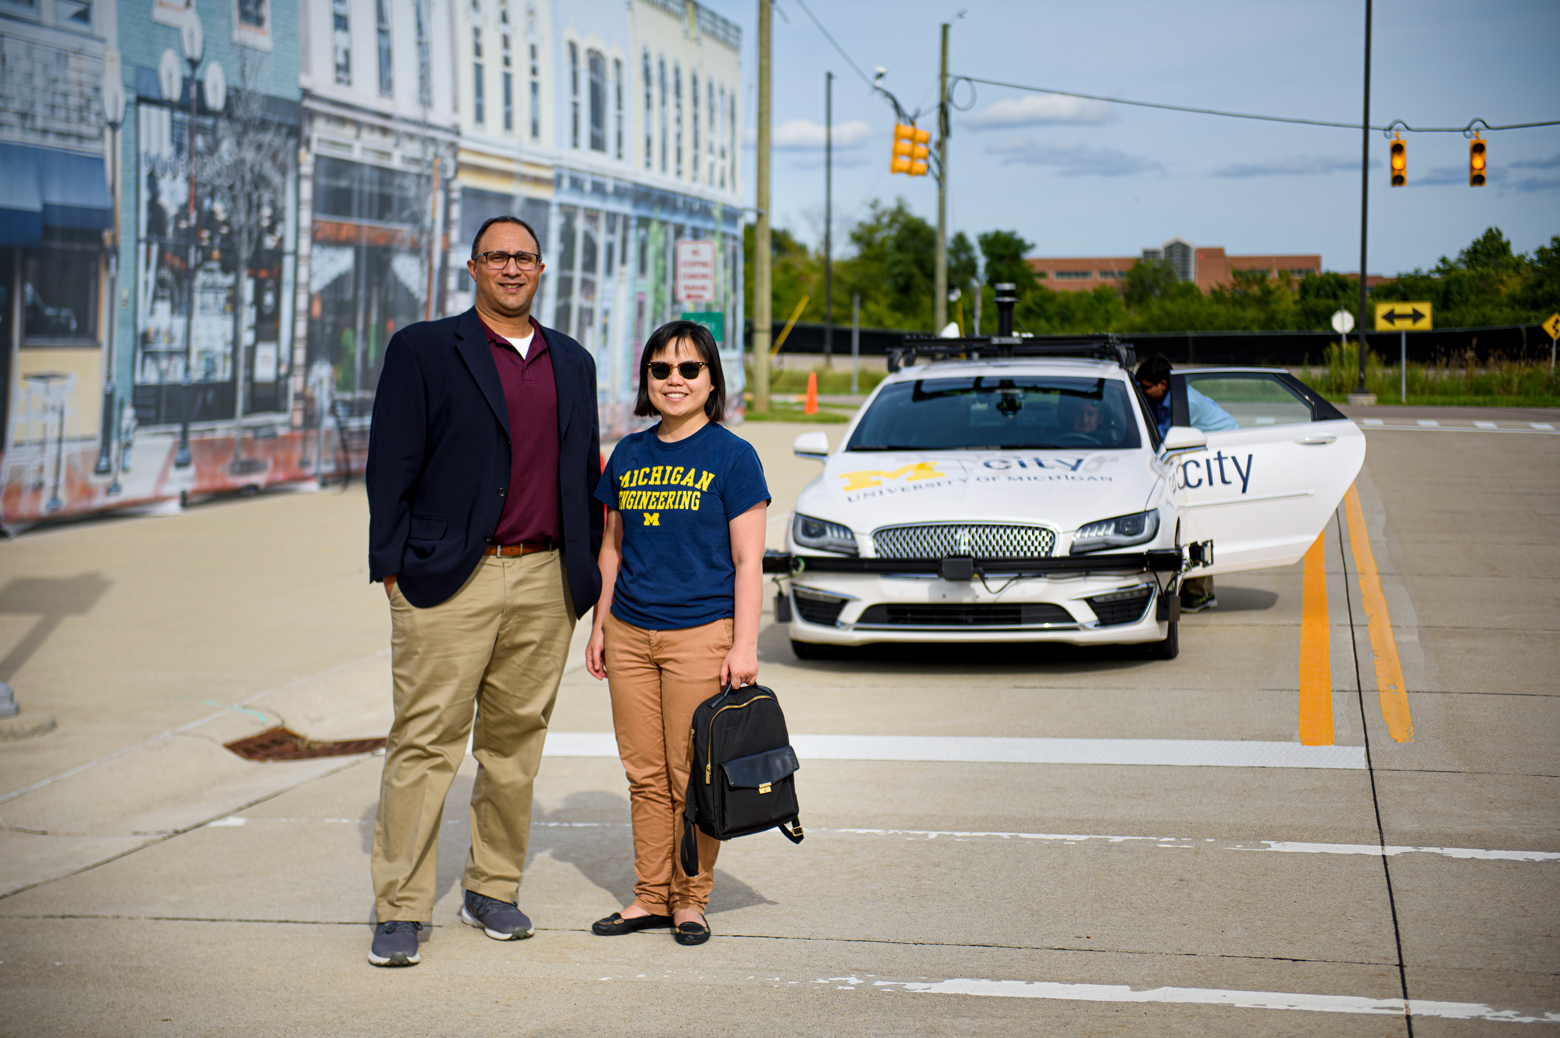 Professors Lionel Robert and X. Jessie Yang stand in front of an autonomous vehicle at Mcity